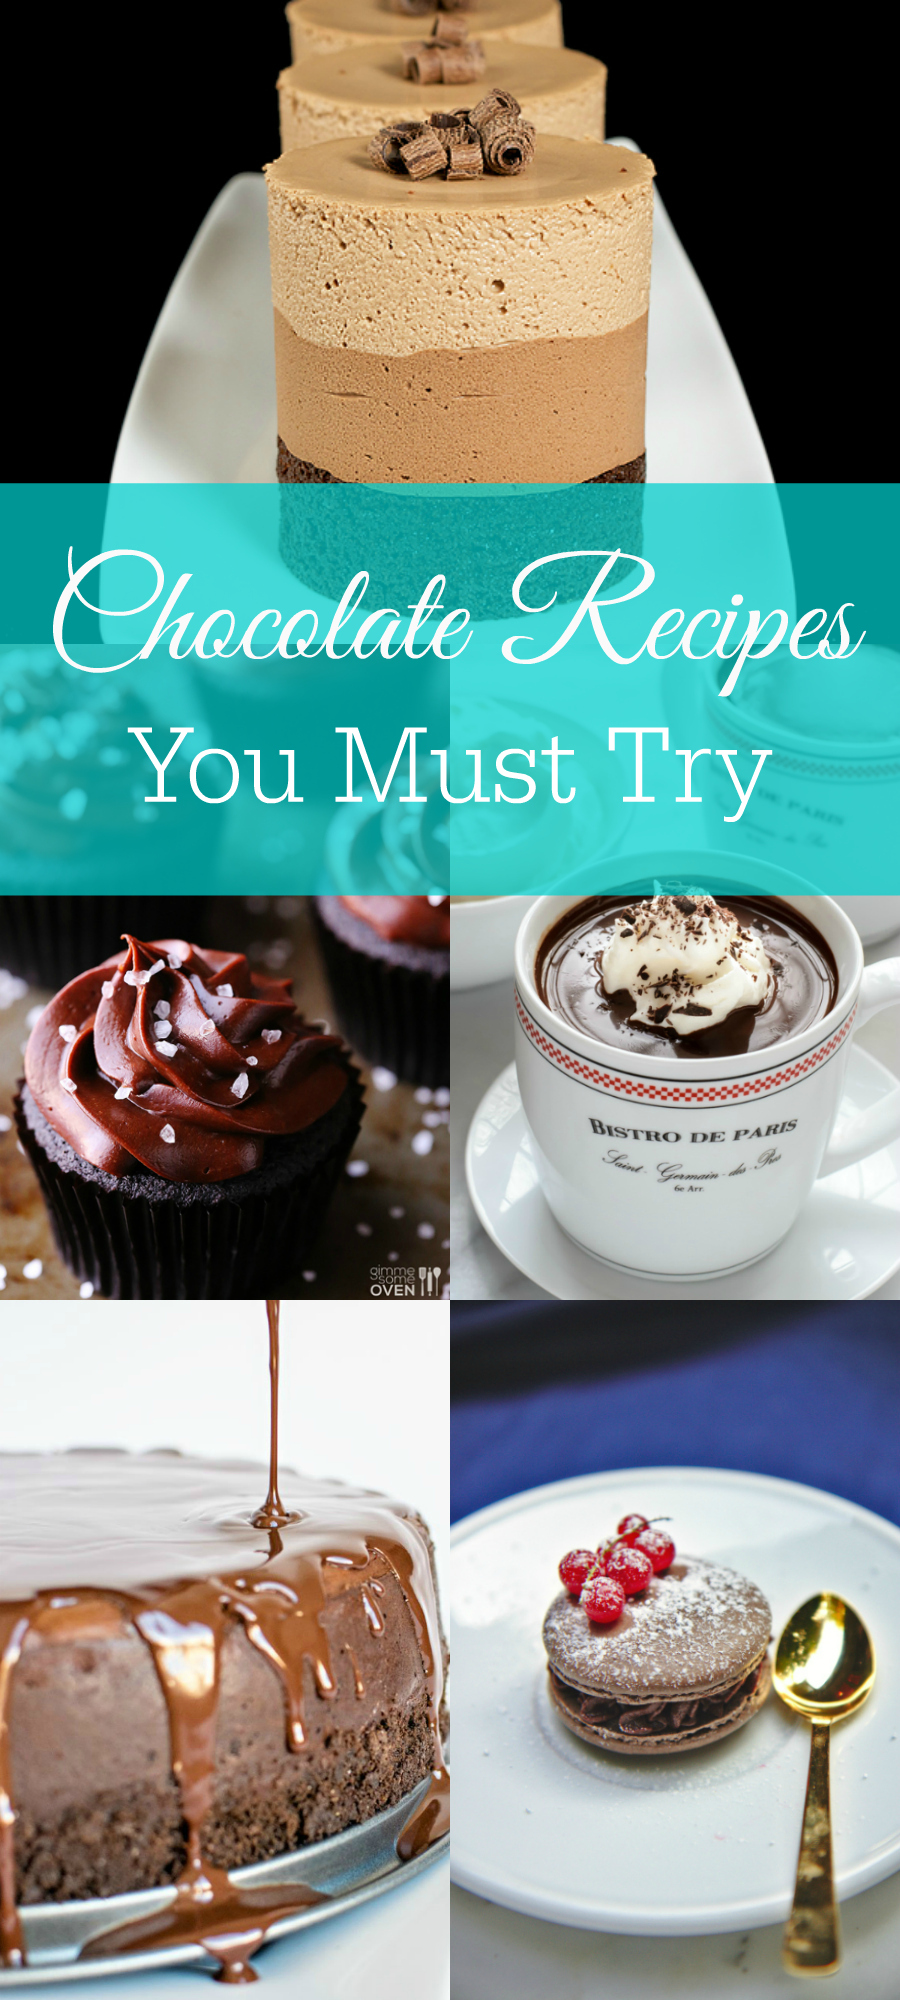 Chocolate Recipes to Try Today, Chocolate Cake, Cupcakes, Cookies